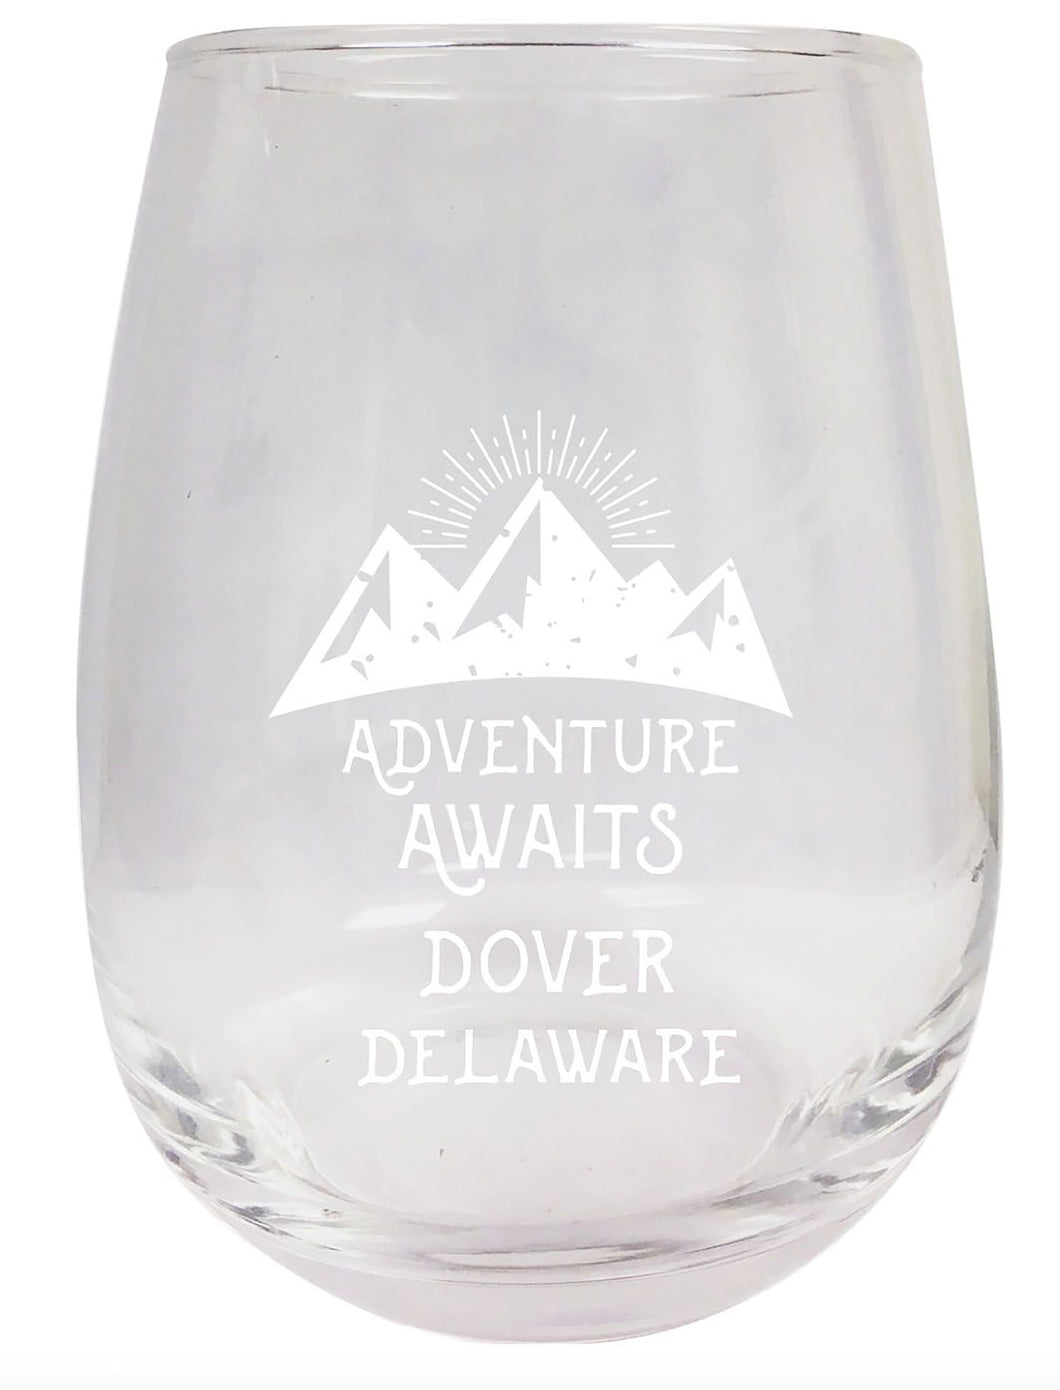 Delaware Engraved Stemless Wine Glass Duo